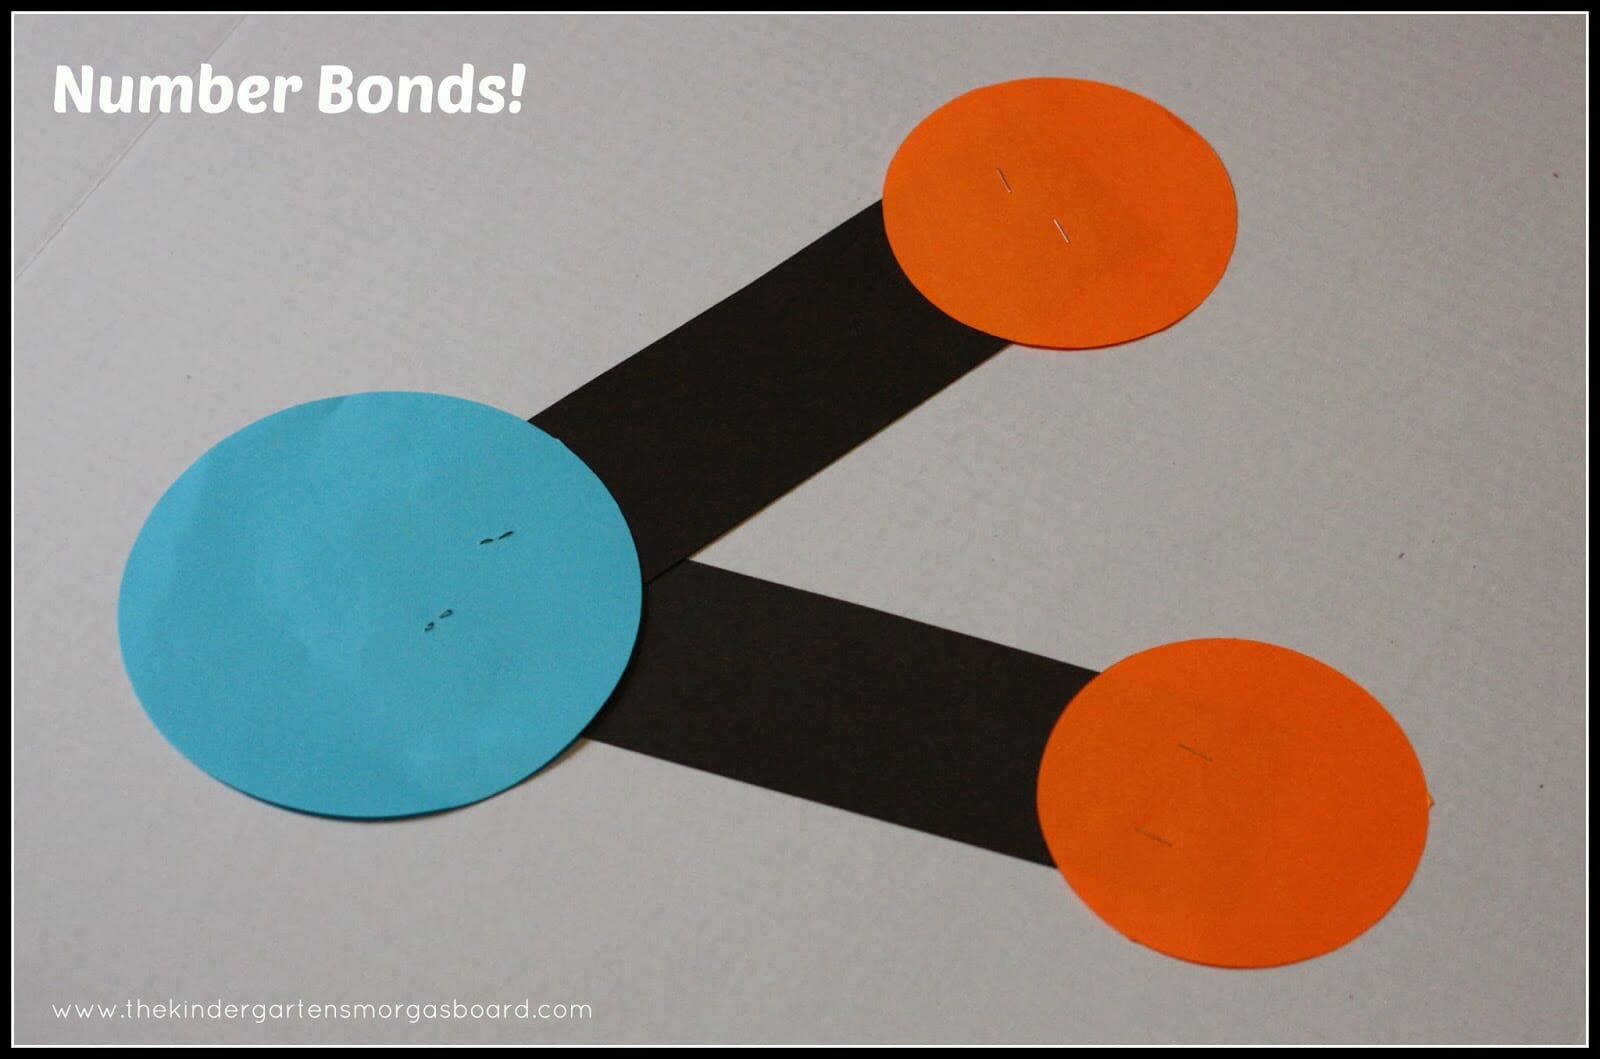 Number Bonds Lesson